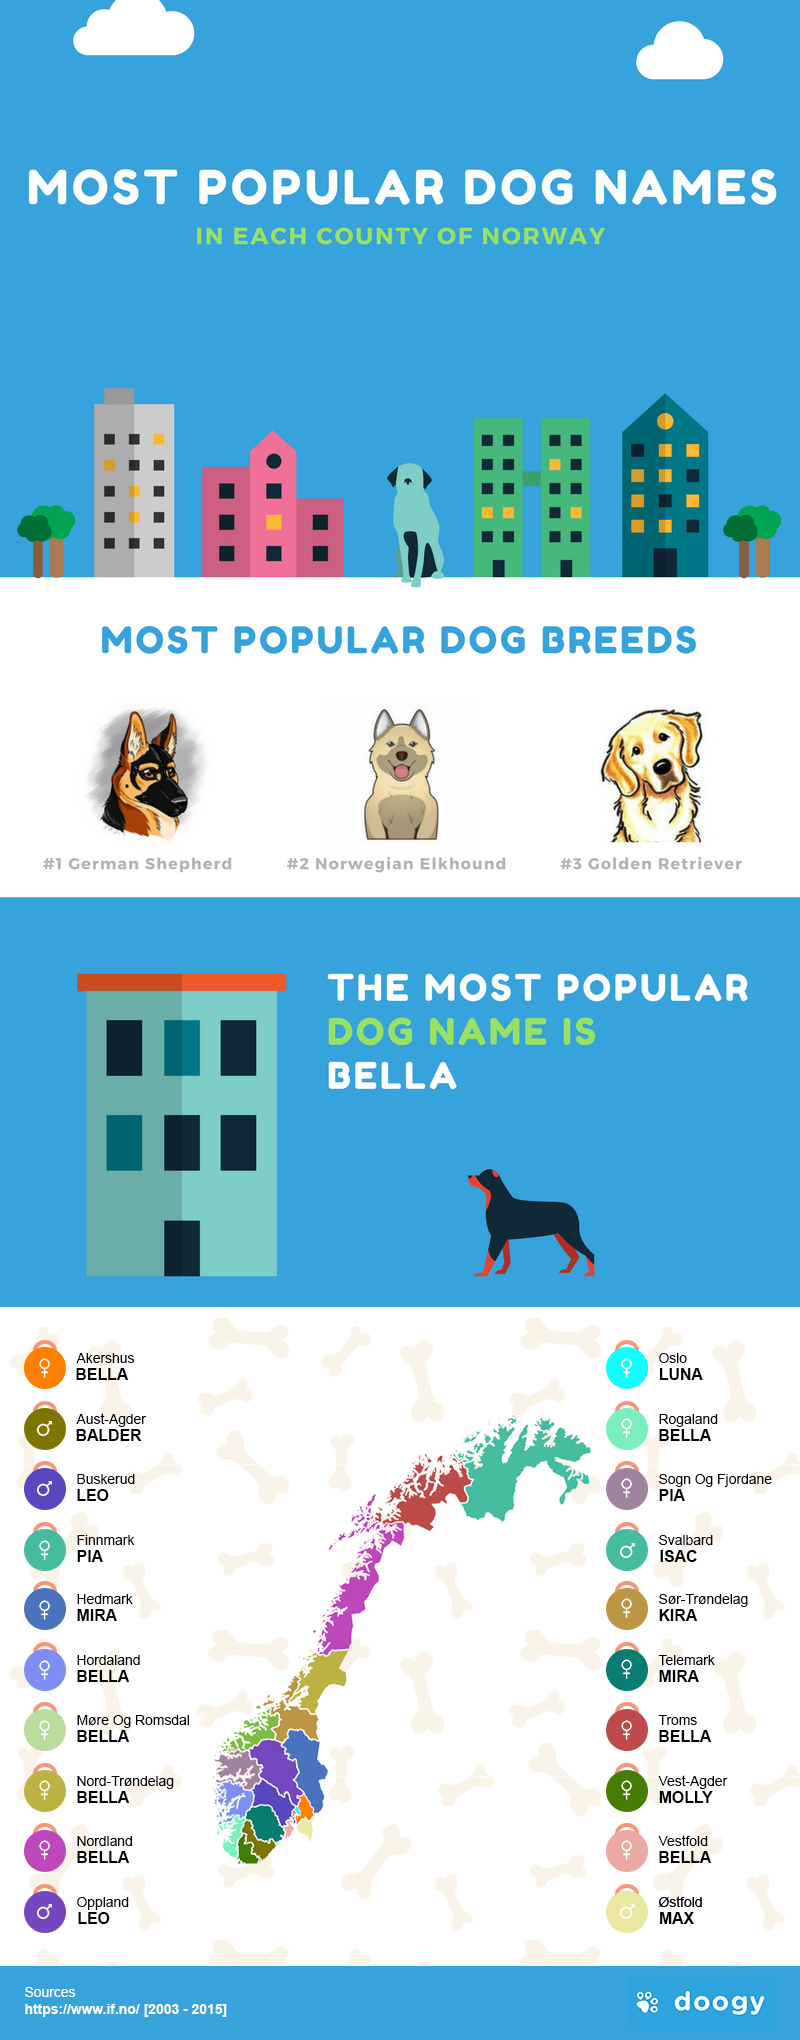 Most popular dog names in Norway